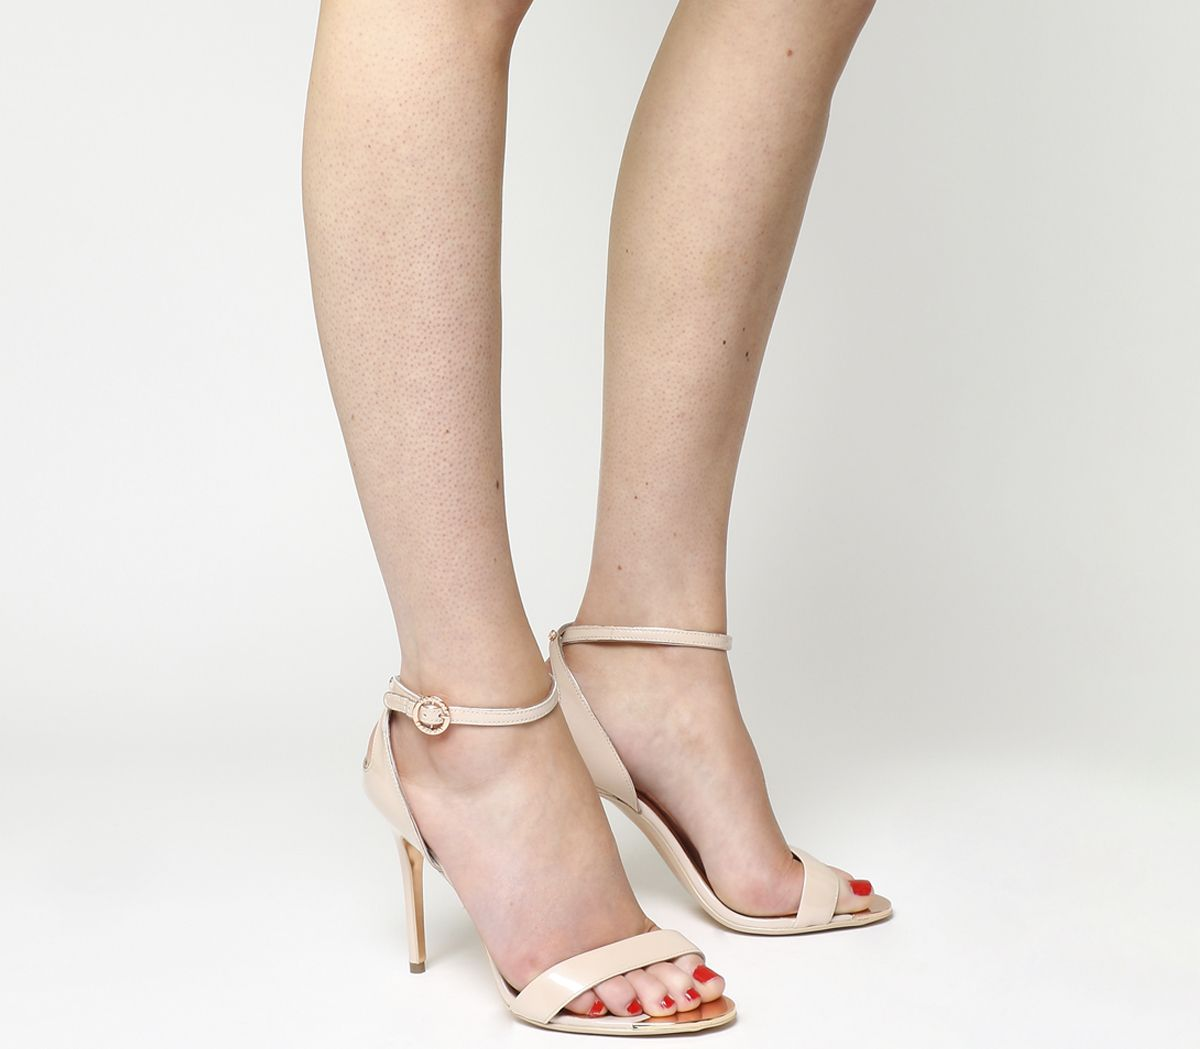 ab3f78bf1 Ted Baker Mirobell Strappy Heels Nude Patent Leather - High Heels